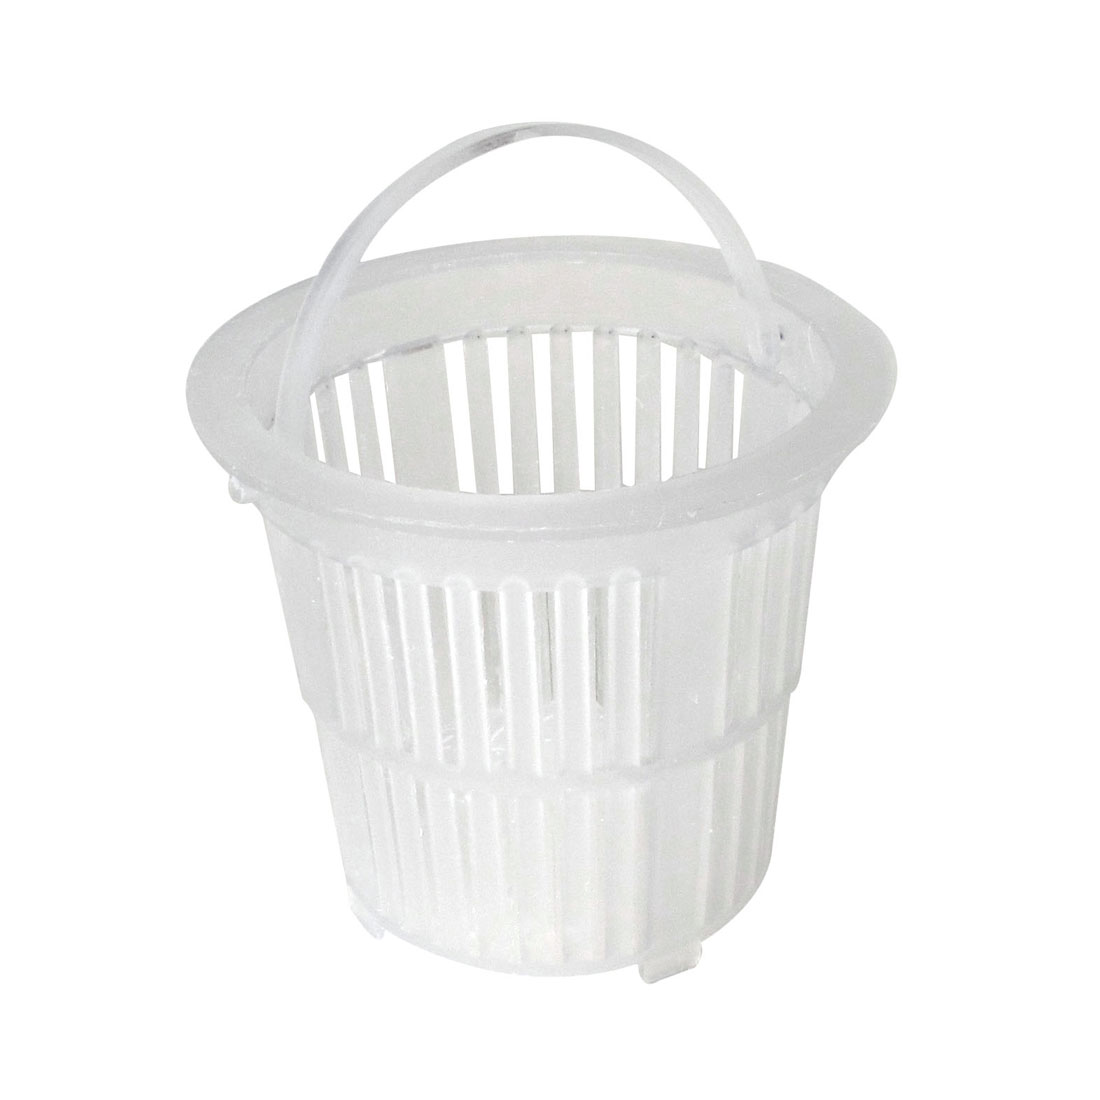 Wash Basin Water Sink White Plastic Basket Shape Drainer Strainer